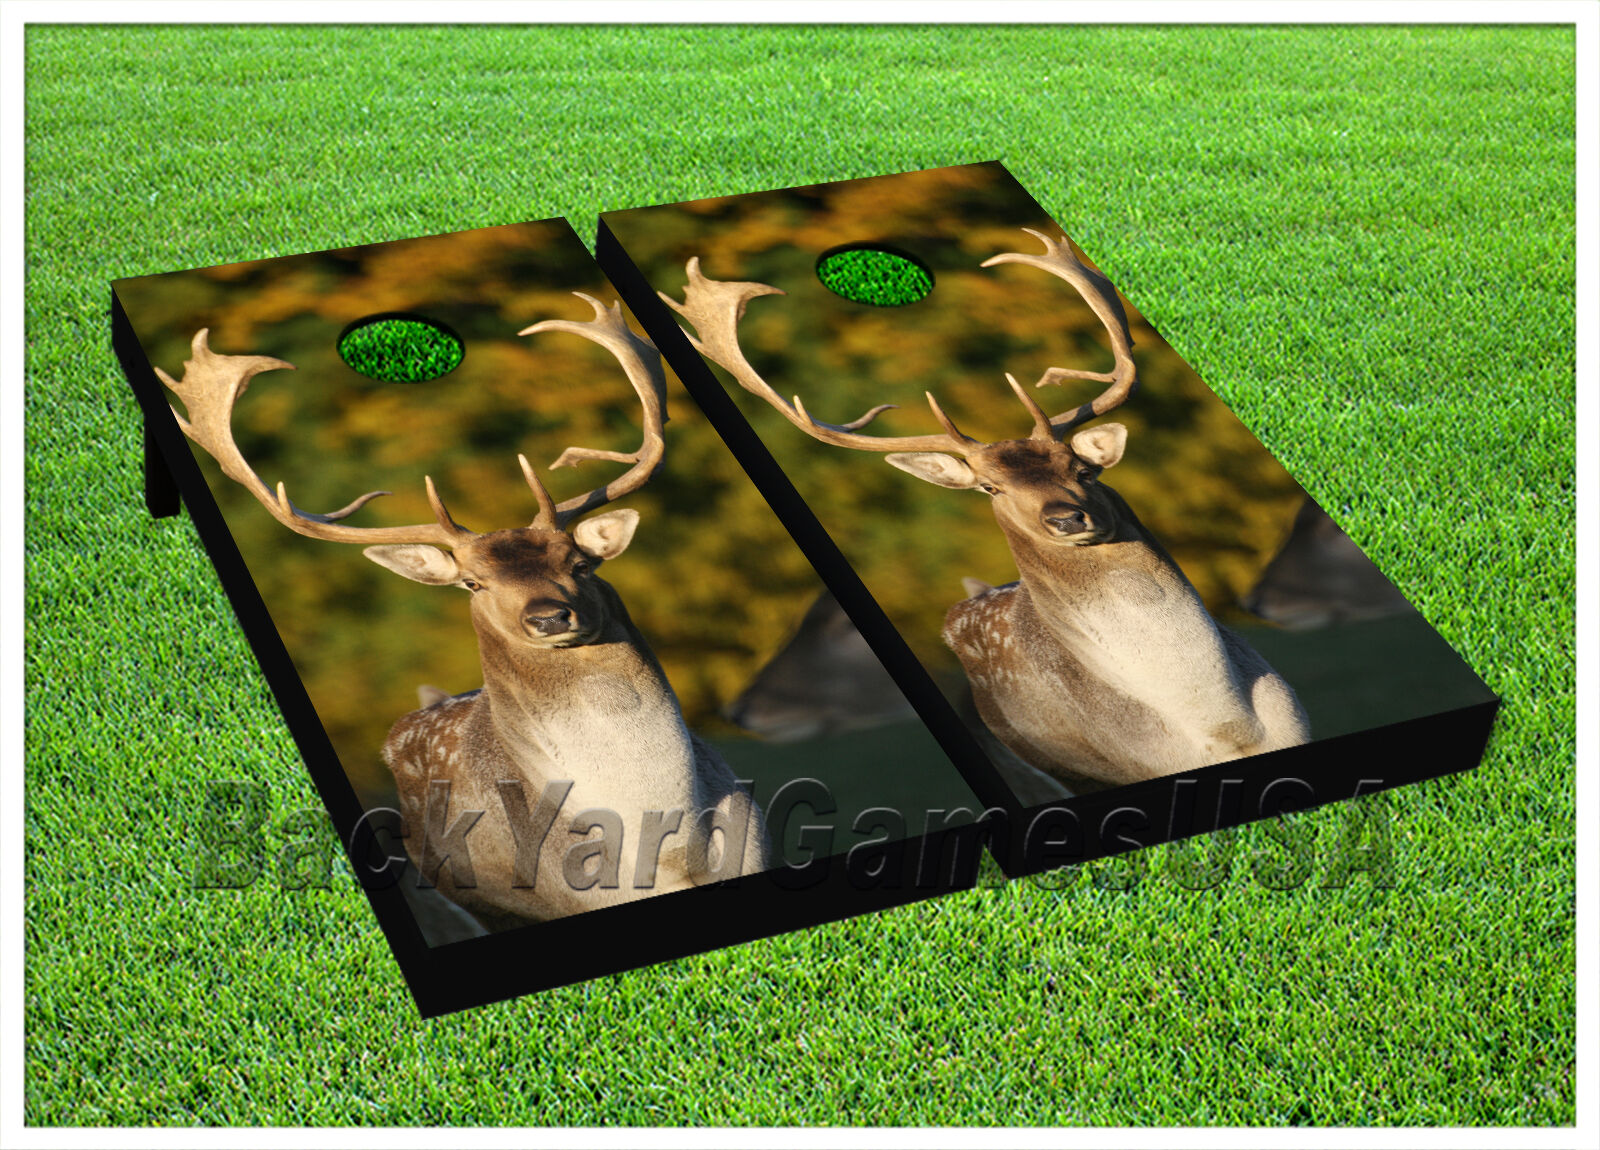 VINYL CORNHOLE BEANBAG Boards Motionless Wild Deer Wraps 1120